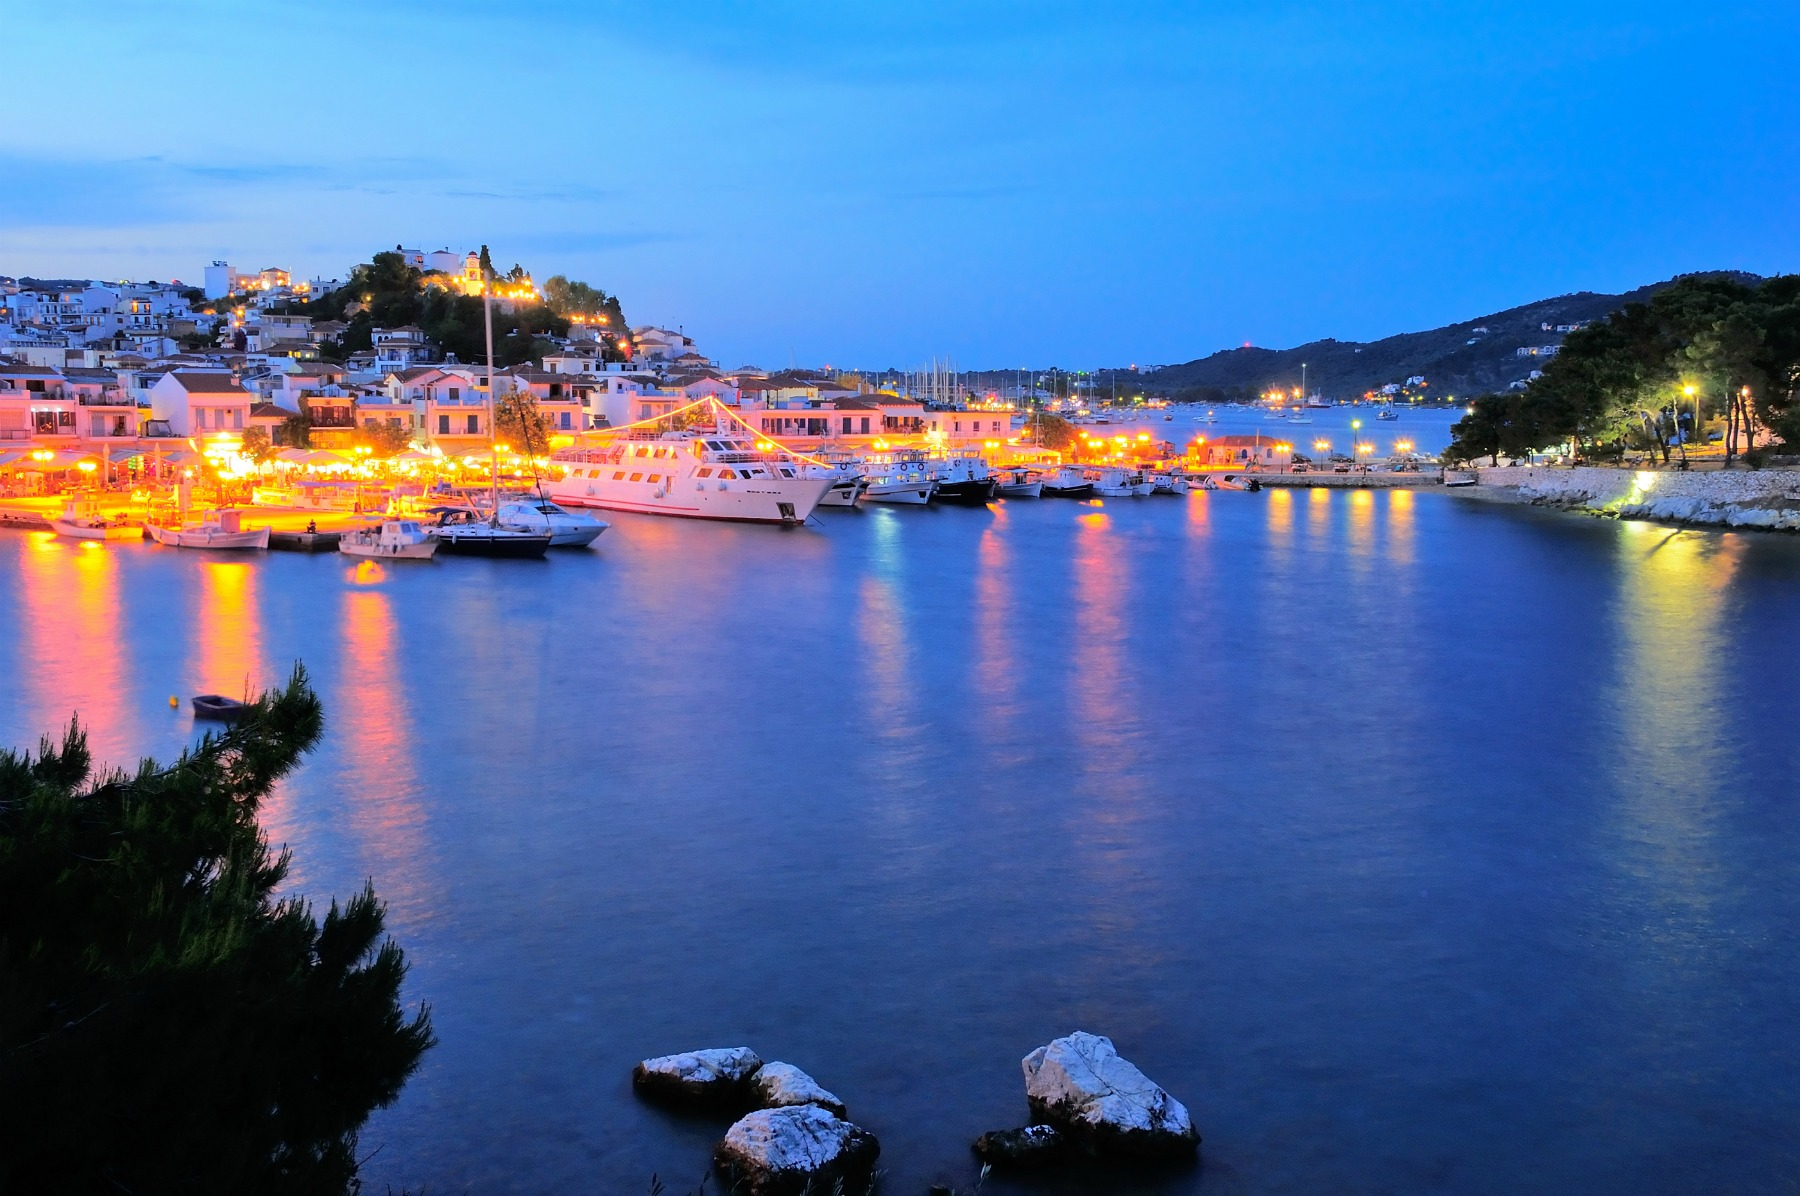 Skiathos_town_at_night_1800x1196